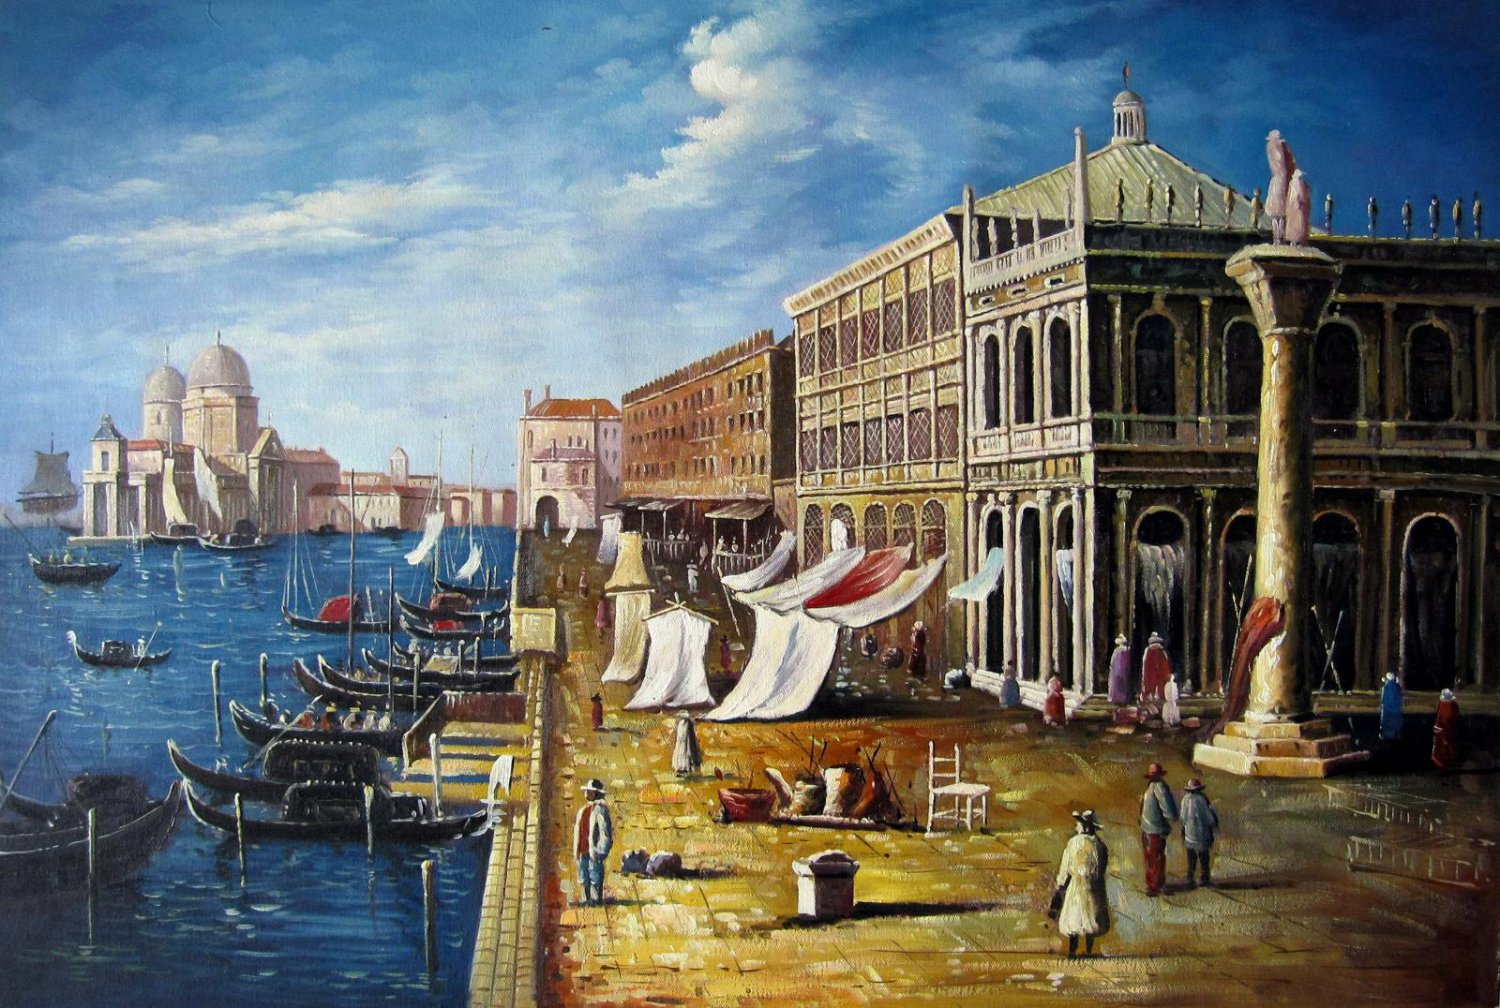 Venice classic 24x36 in. stretched Oil Painting Canvas Art Wall Decor modern09D